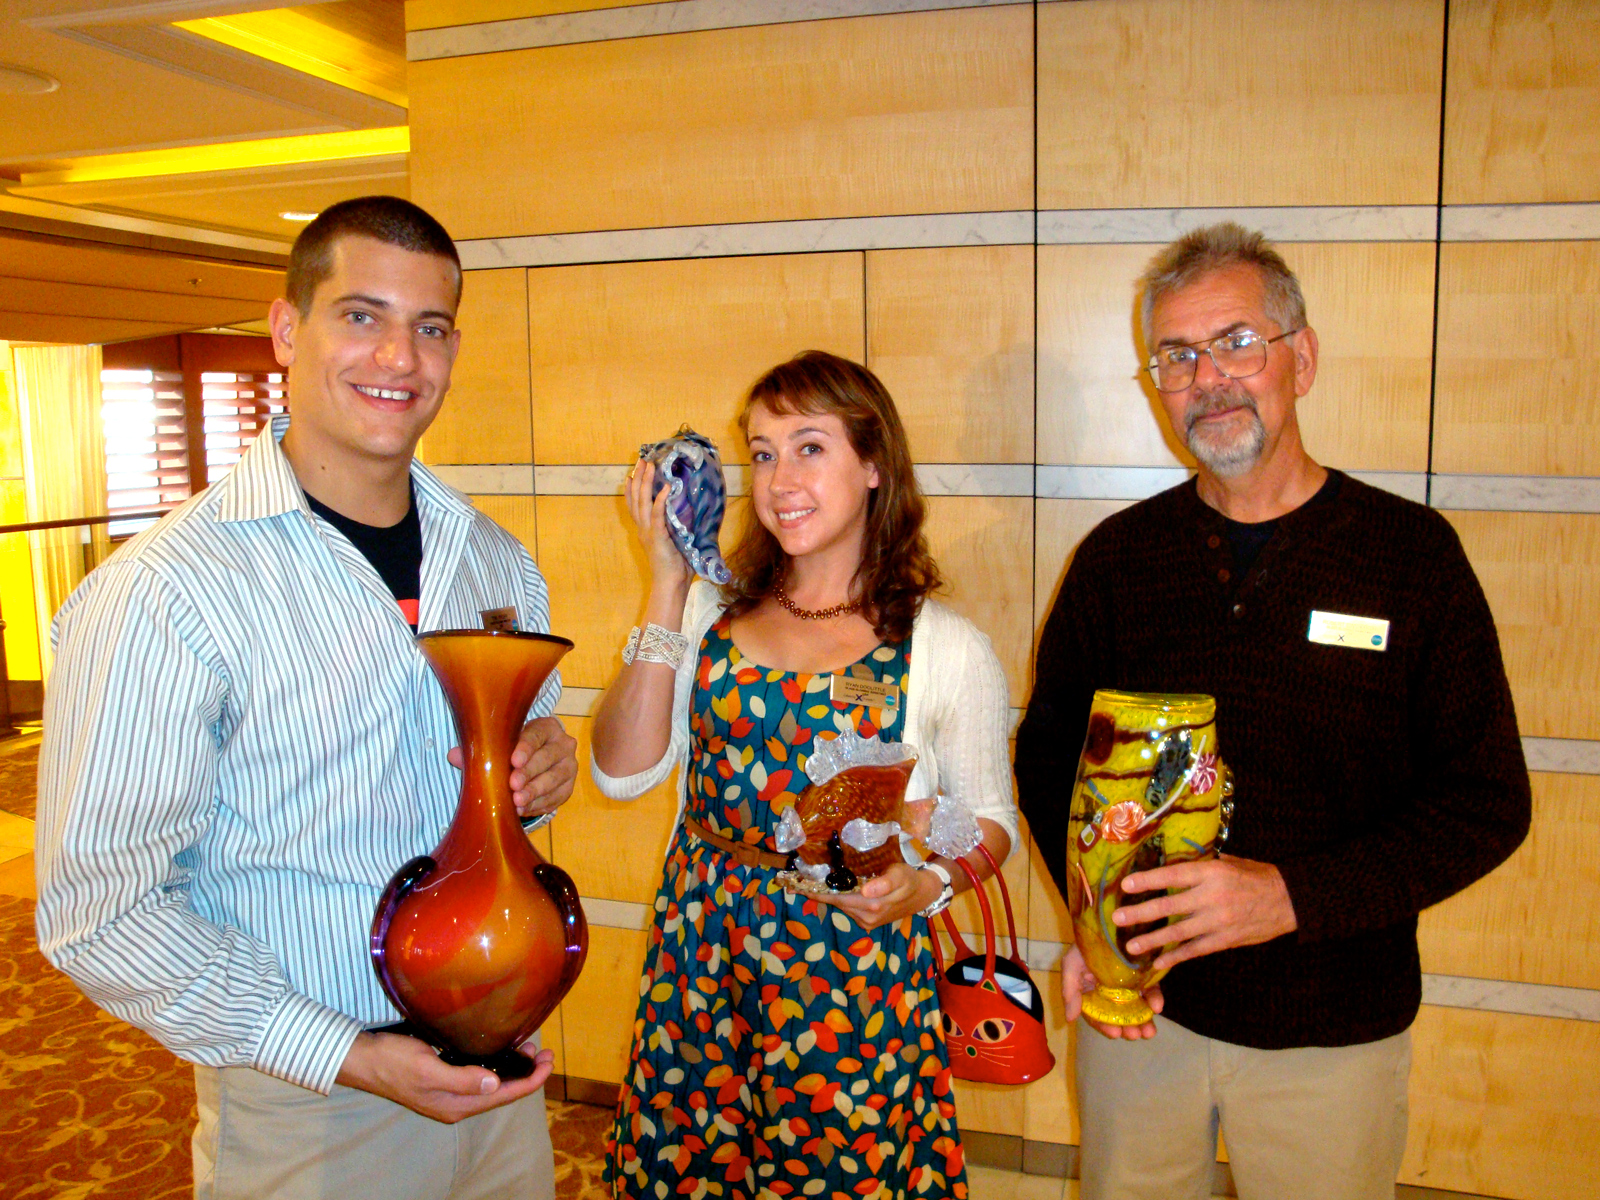 Auction to benefit the Celebrity Cruises Glassmaking Scholarship fund